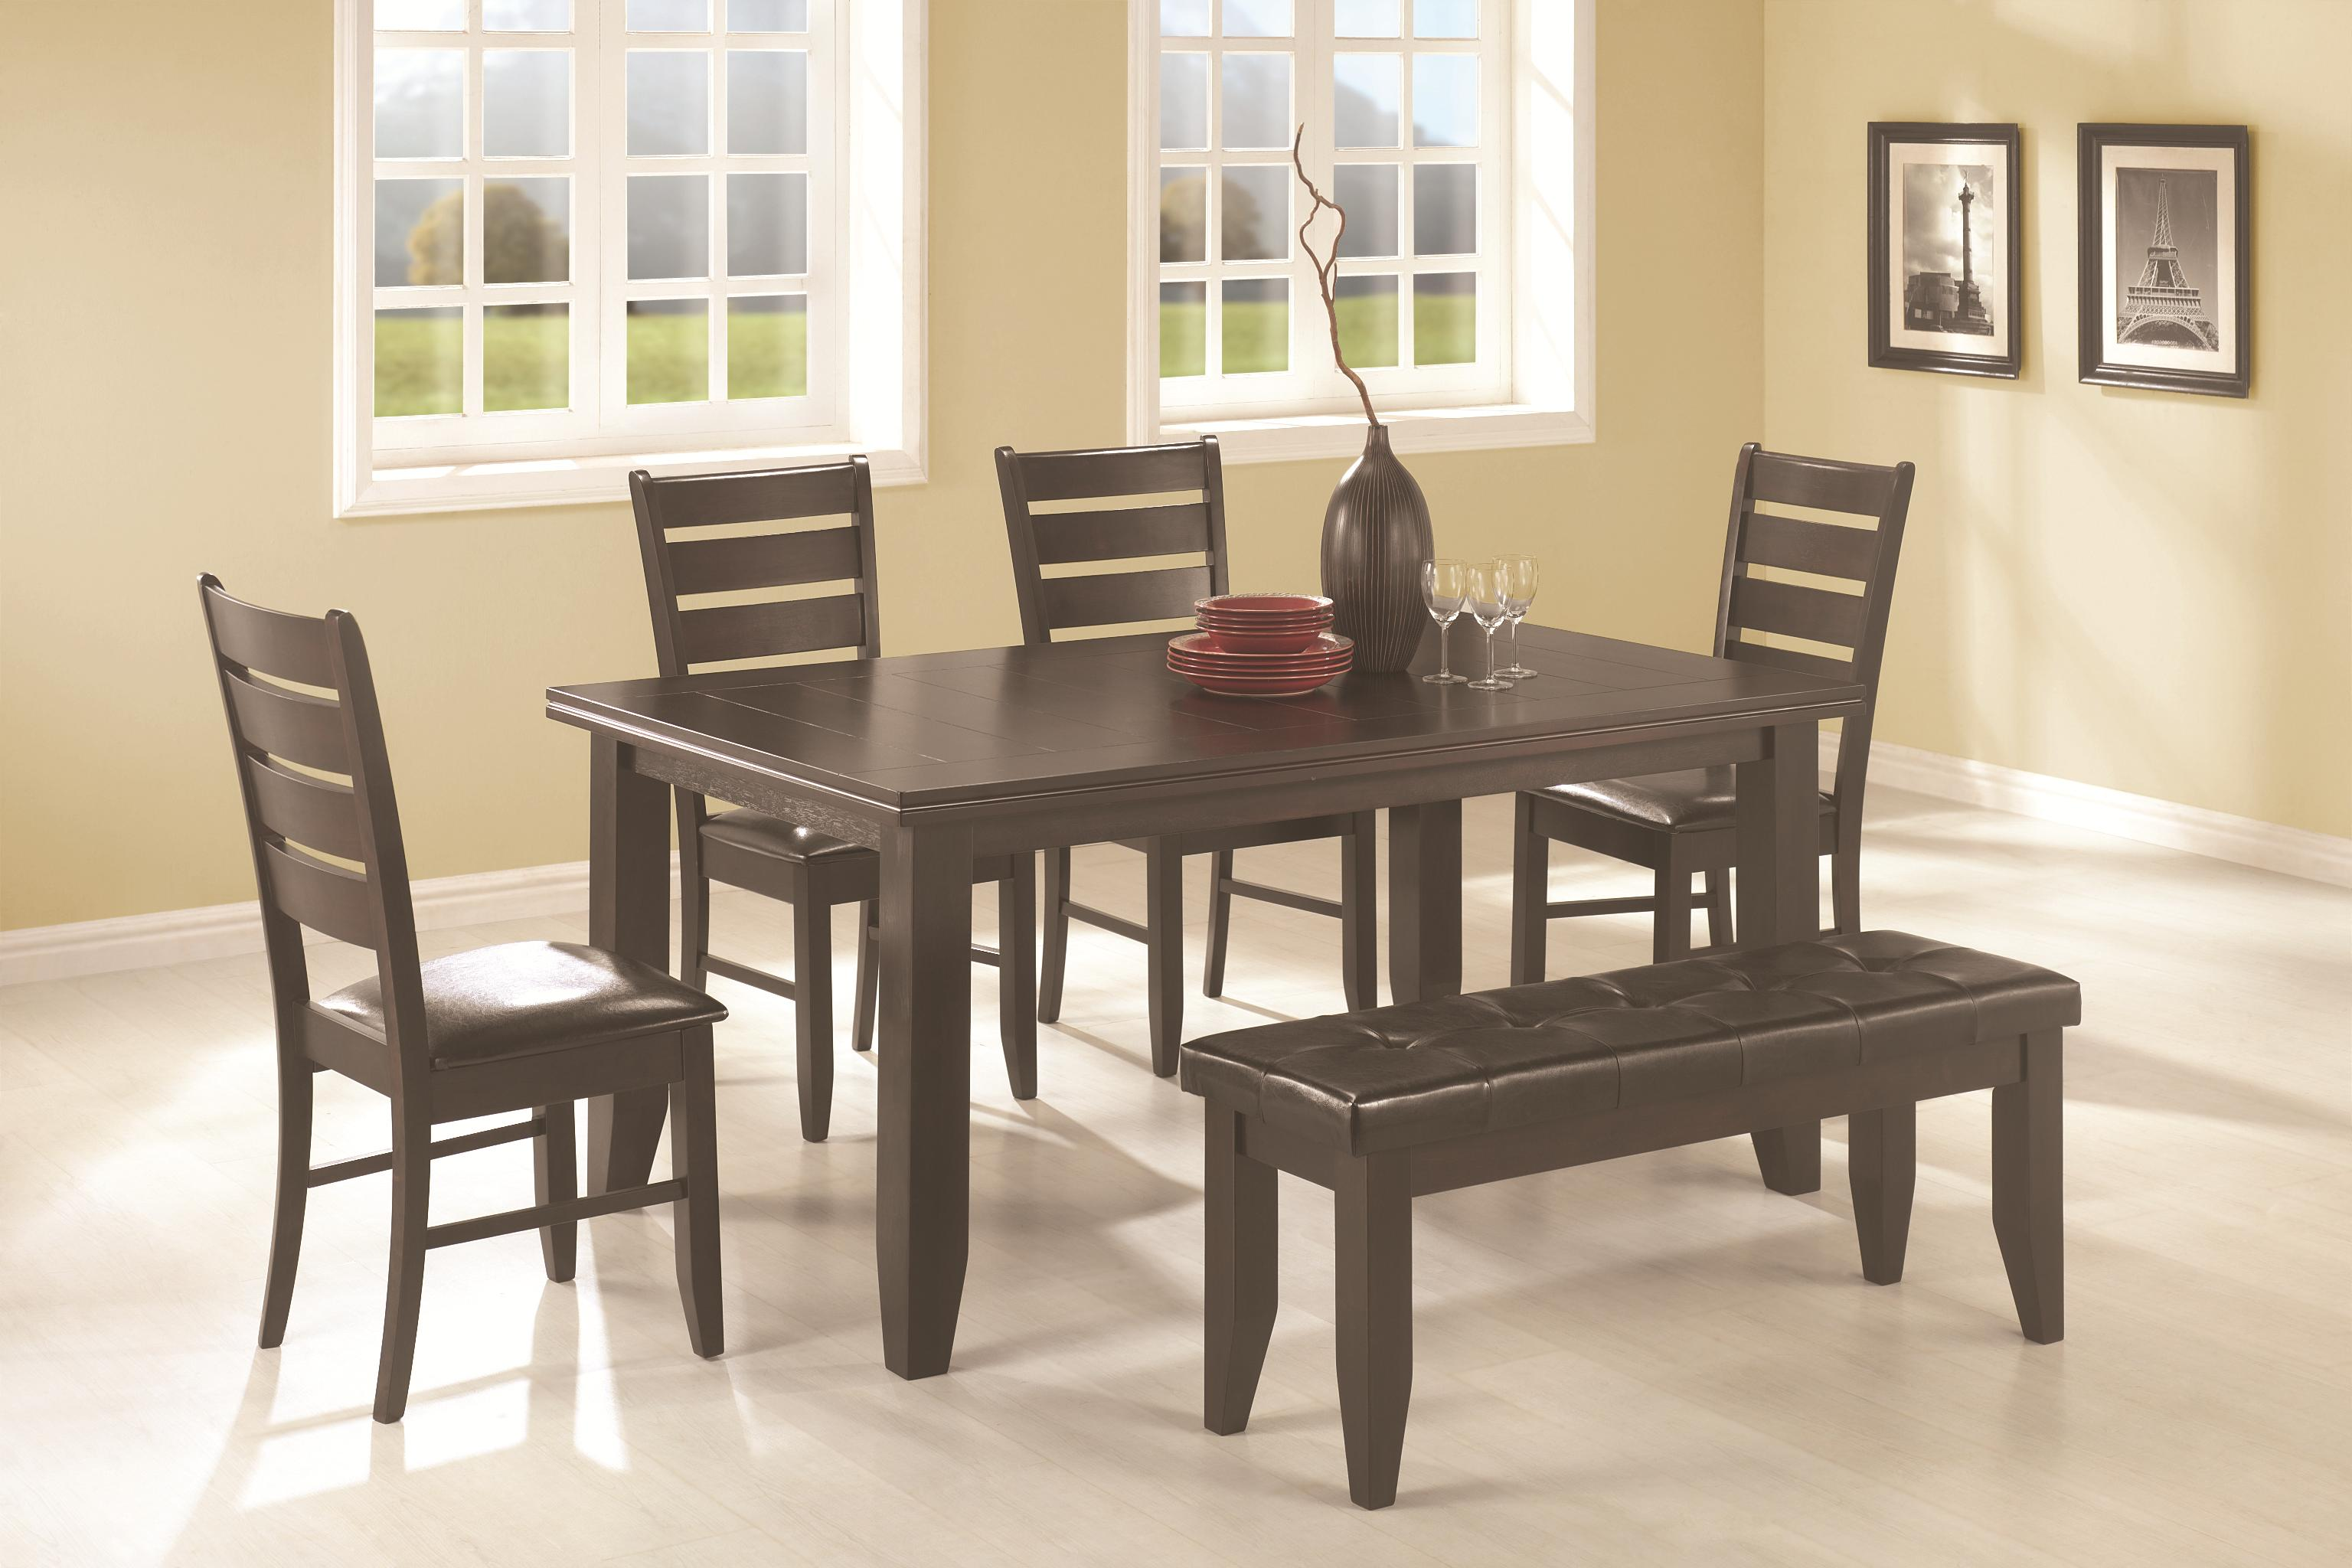 Amazing Dalila 6 Piece Dining Set Ncnpc Chair Design For Home Ncnpcorg